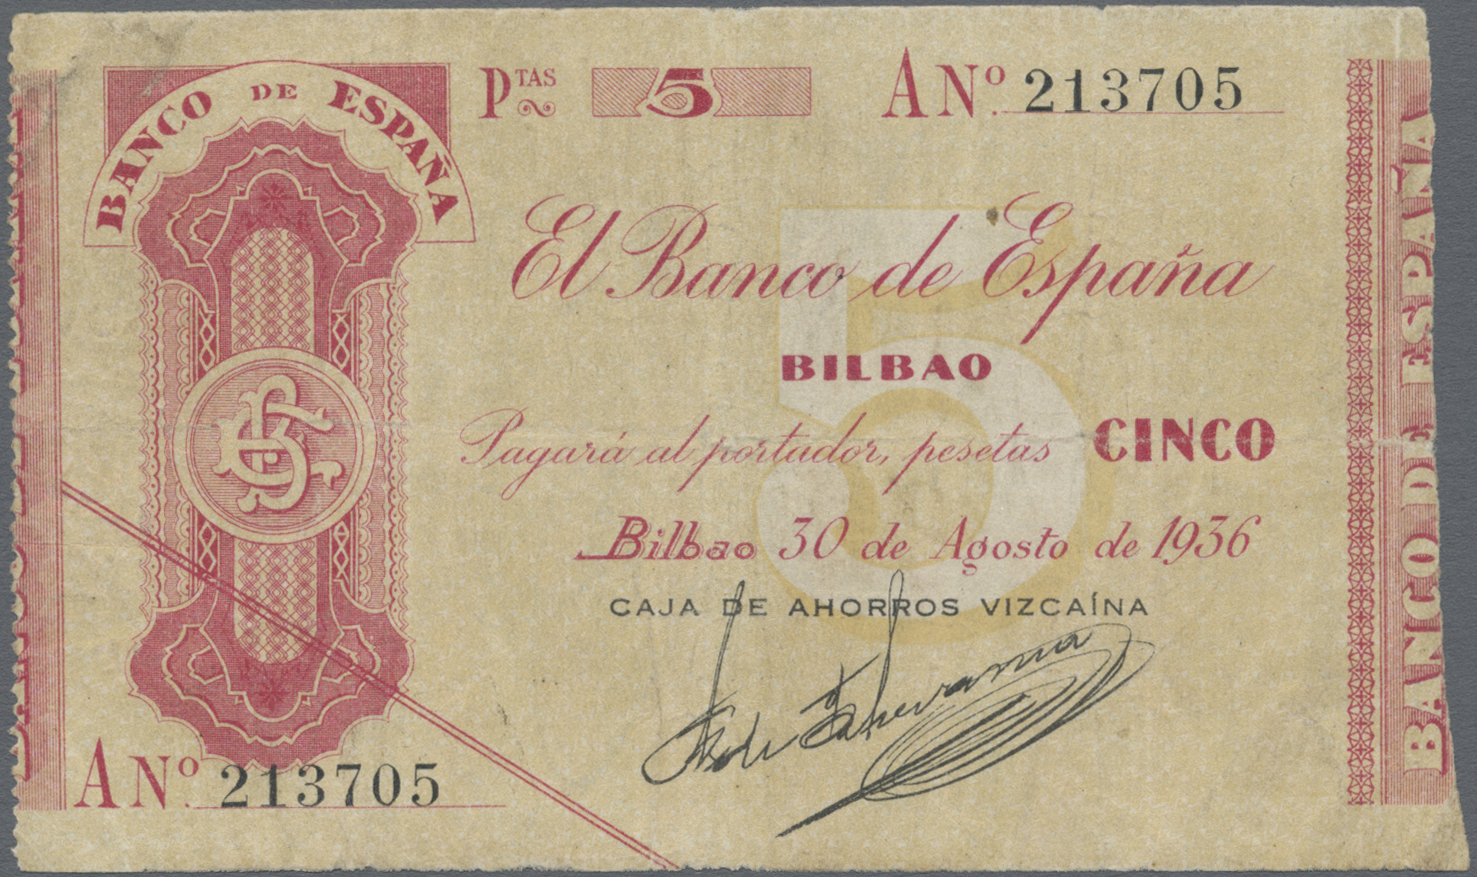 Lot 01548 - Spain / Spanien | Banknoten  -  Auktionshaus Christoph Gärtner GmbH & Co. KG Sale #46 The Banknotes Worldwide section of the 46th Christoph Gärtner Auction